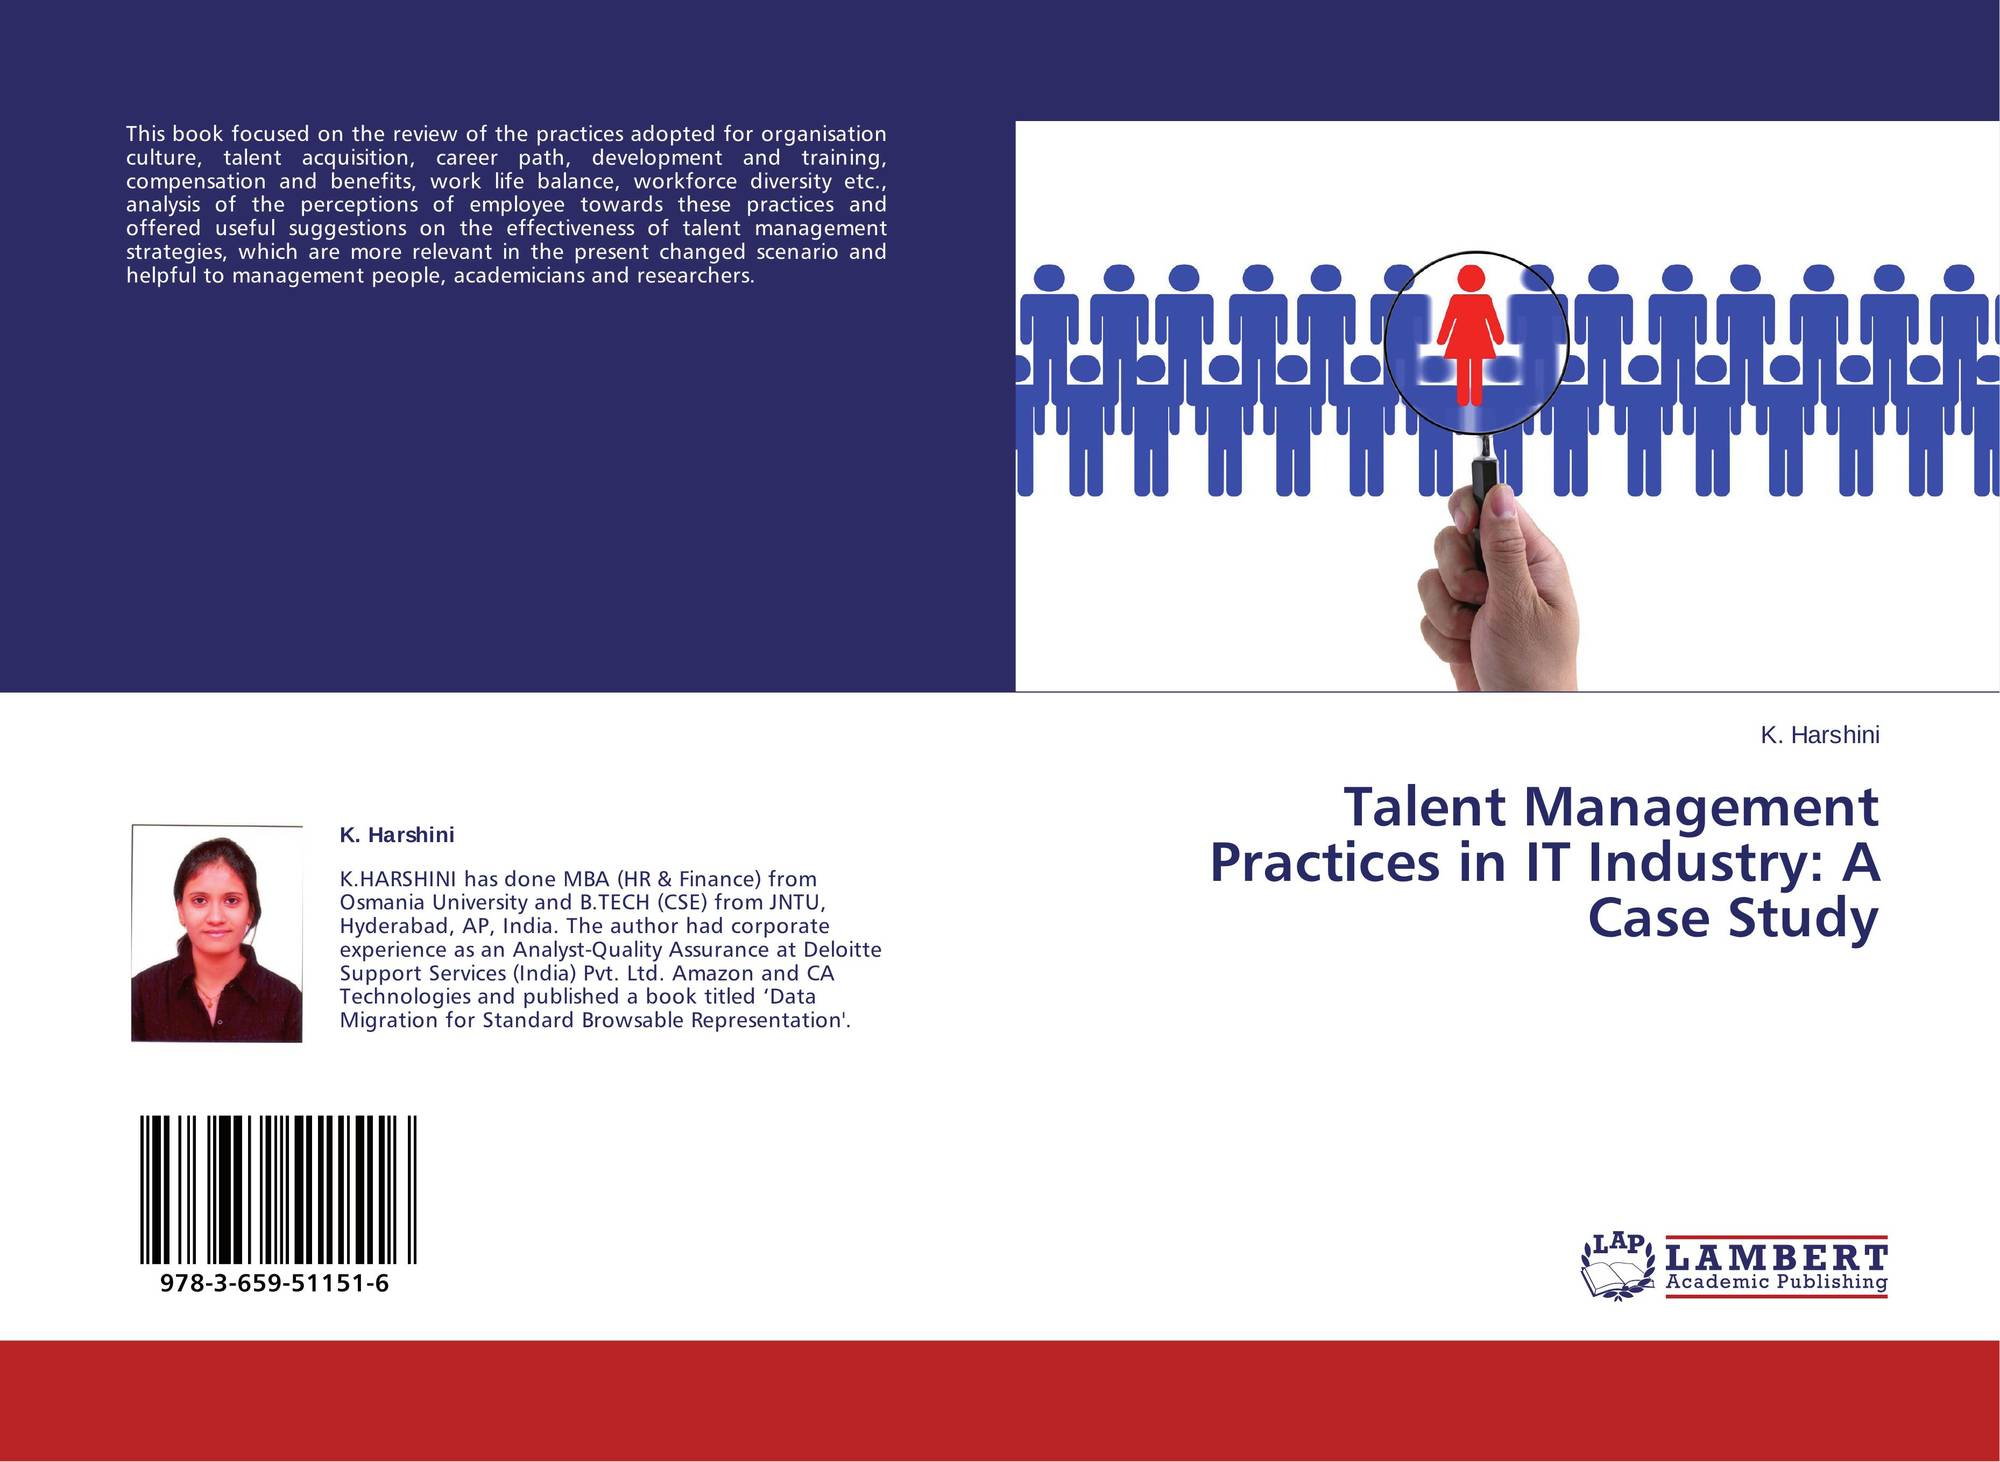 managing a diverse workforce in indonesia case study